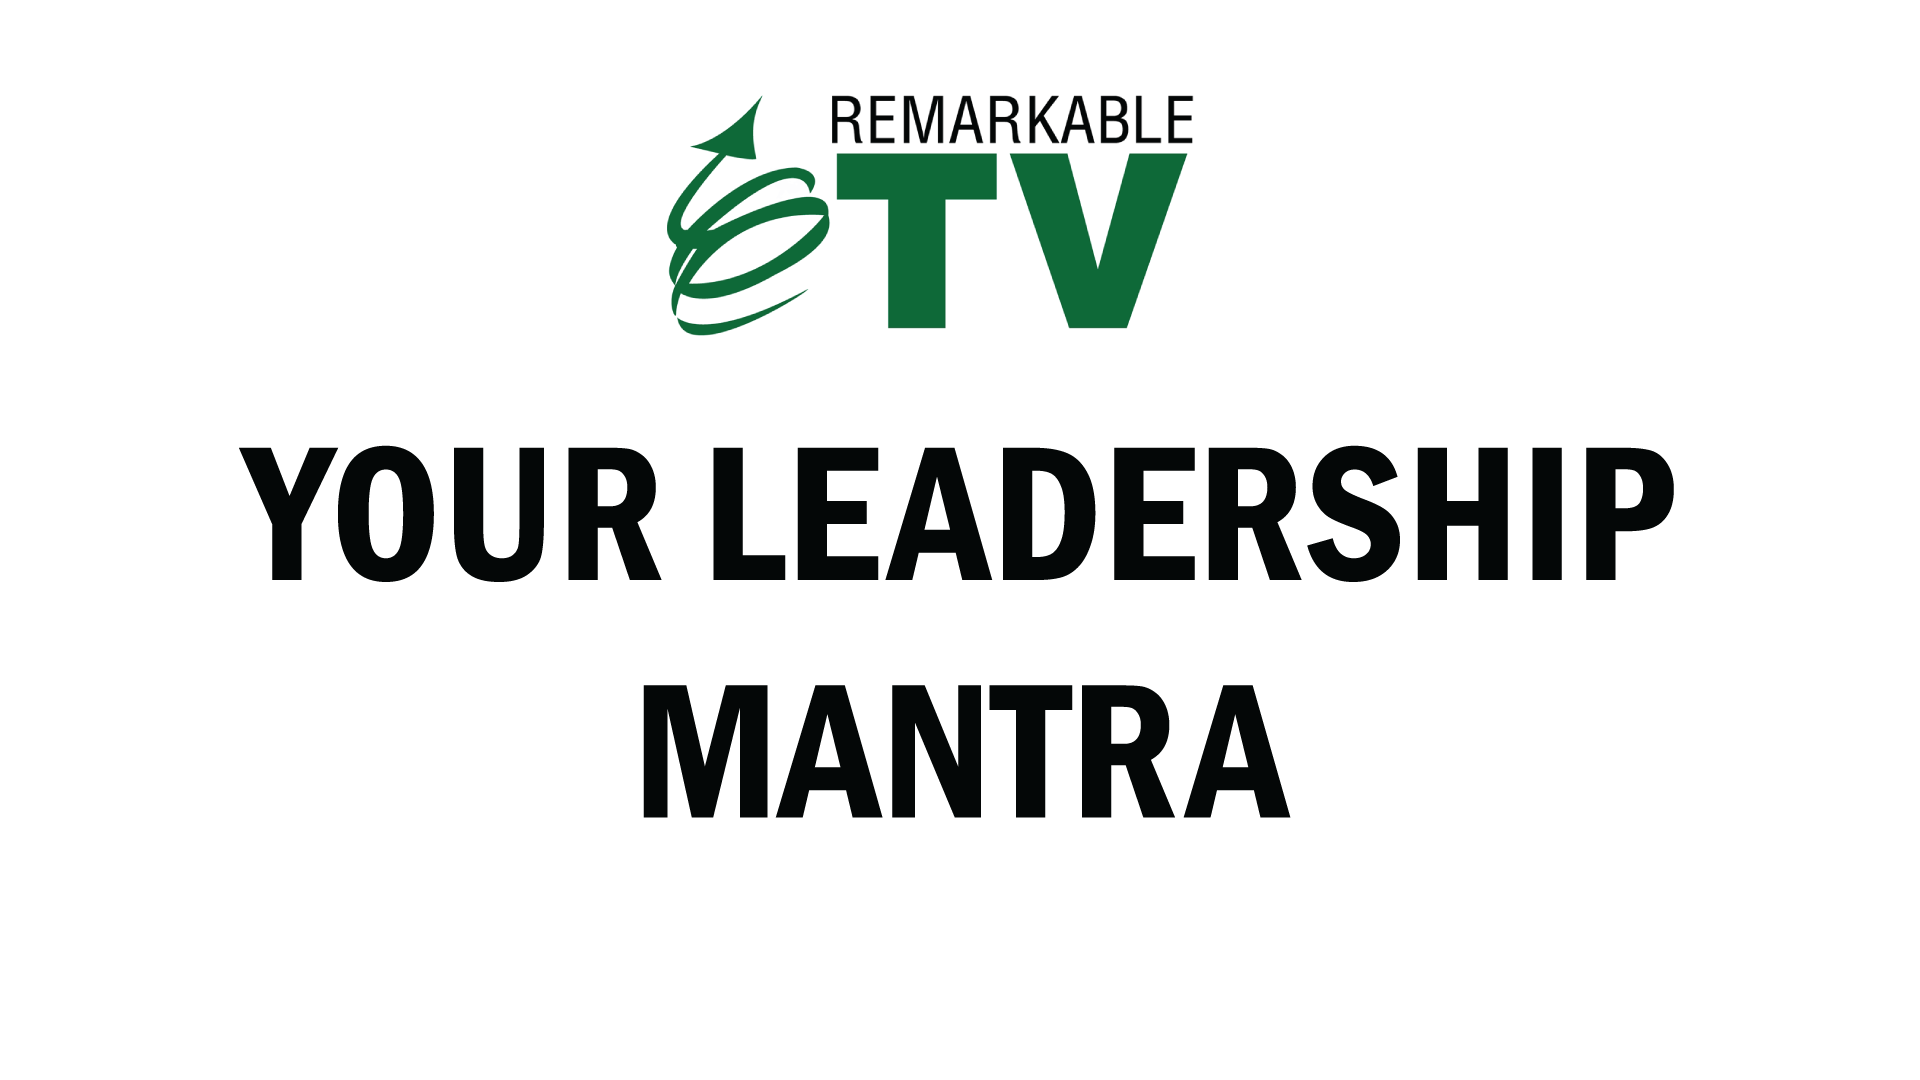 Remarkable TV: Your Leadership Mantra with Kevin Eikenberry